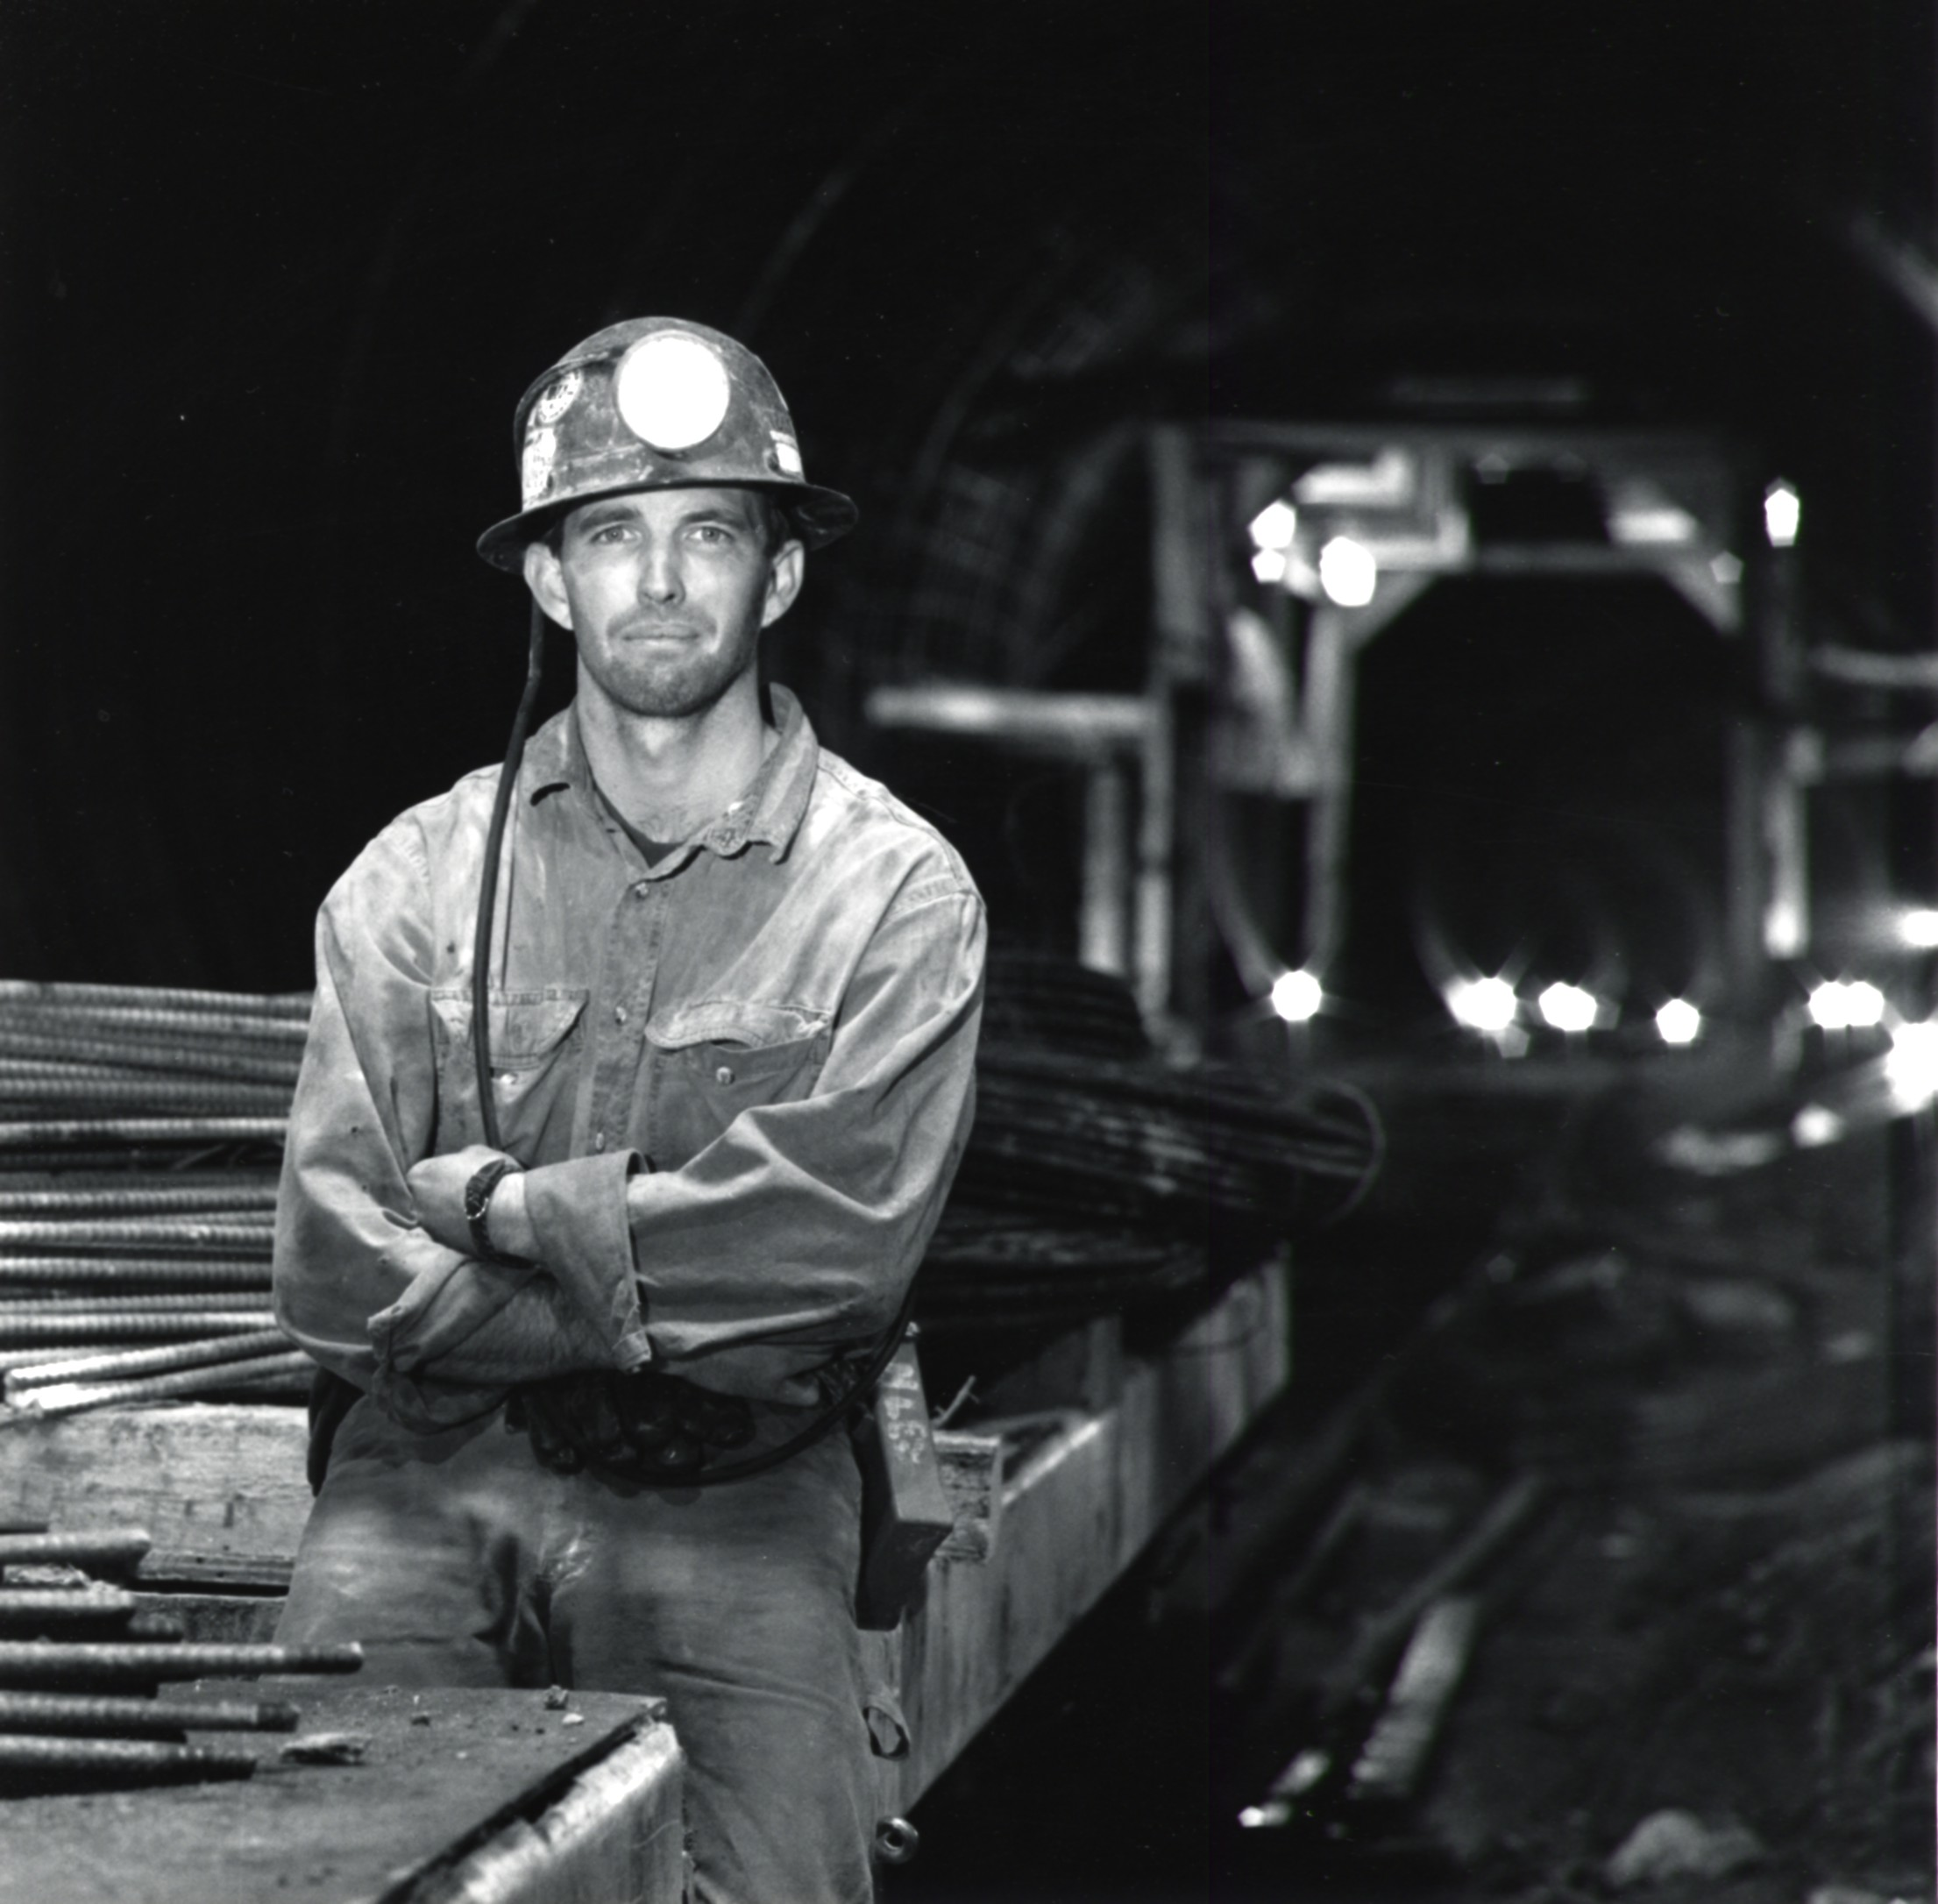 Miner With Arms Crossed - 1990's